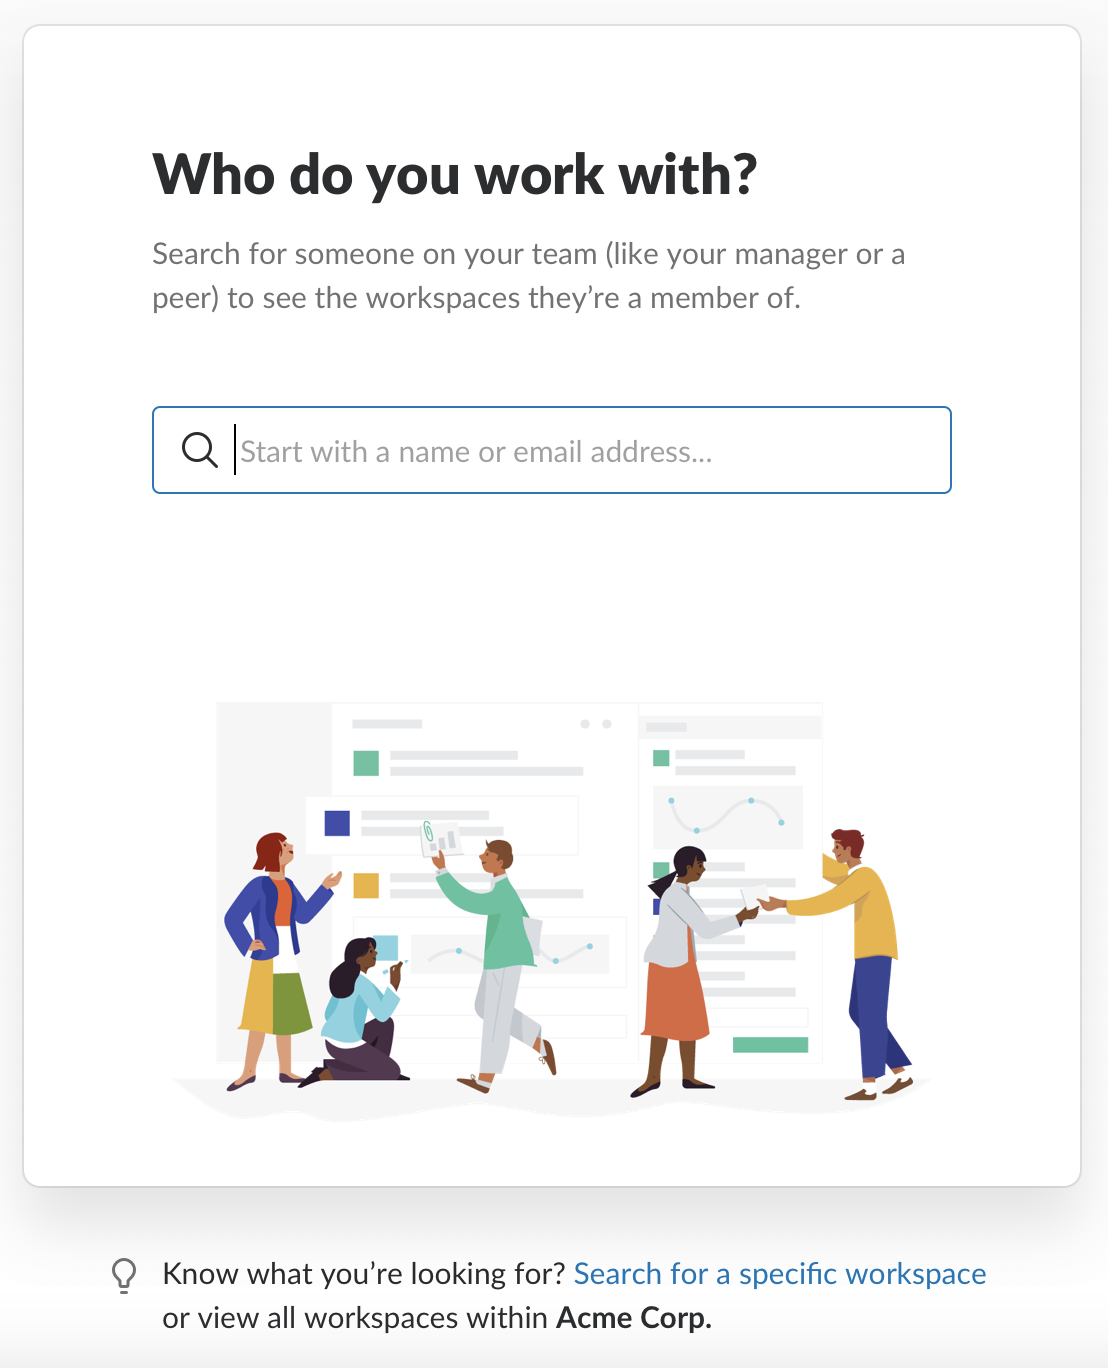 Prompt to search for others on your team to see the workspaces that they're members of